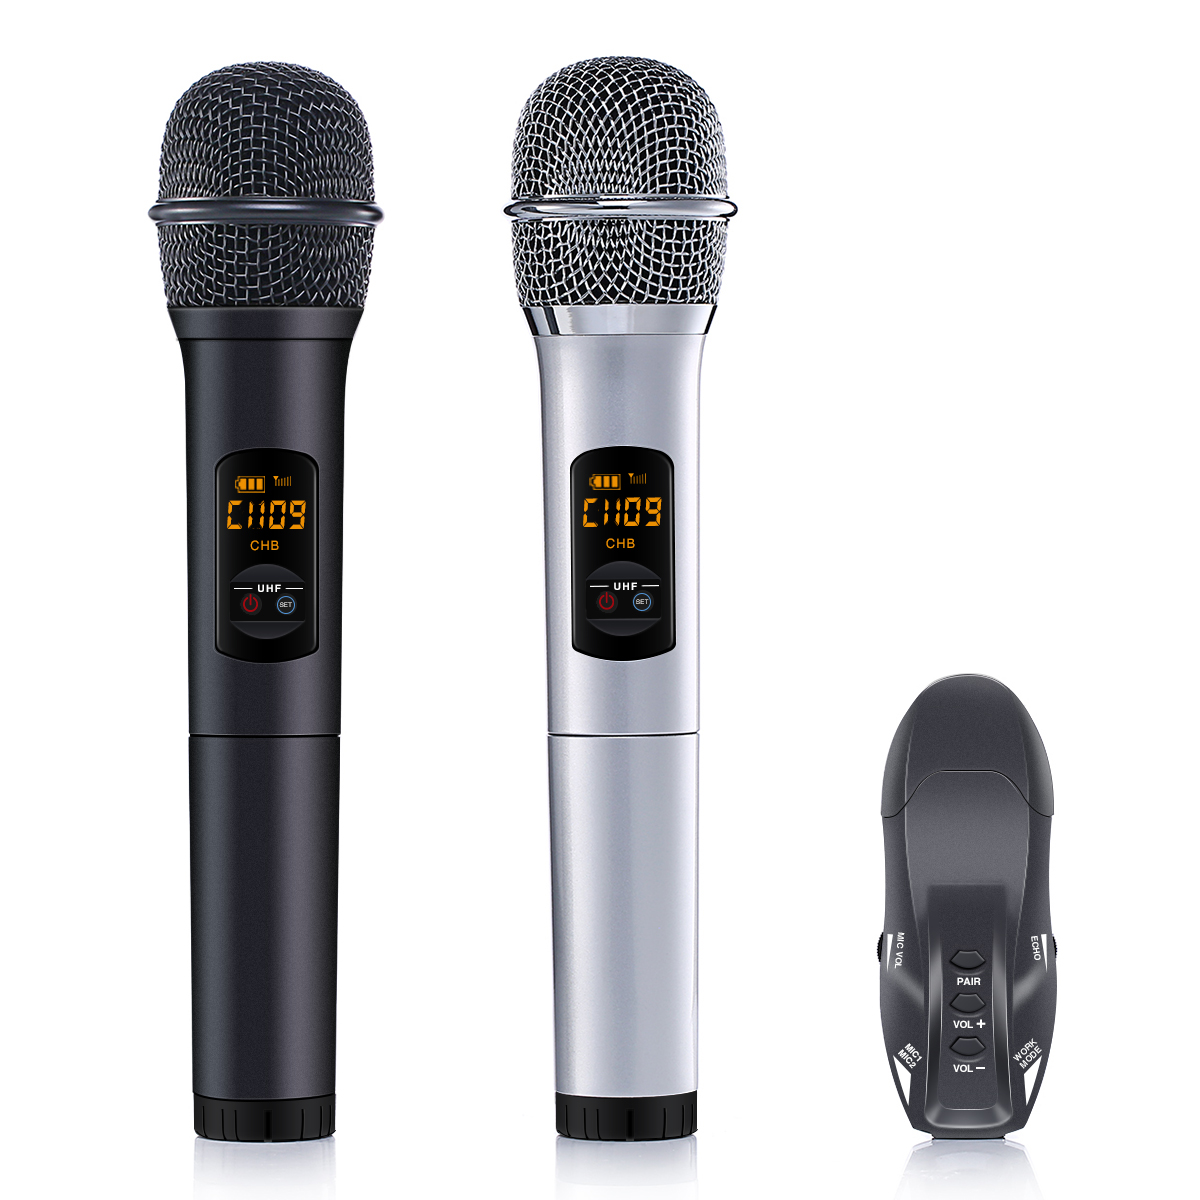 2 Wireless Microphone Set,ELEGIANT K18U 10 Channel UHF Handheld HiFi Wireless Microphones Karaoke Receiver Dynamic Microphones for Wedding Speech Conference Karaoke Party